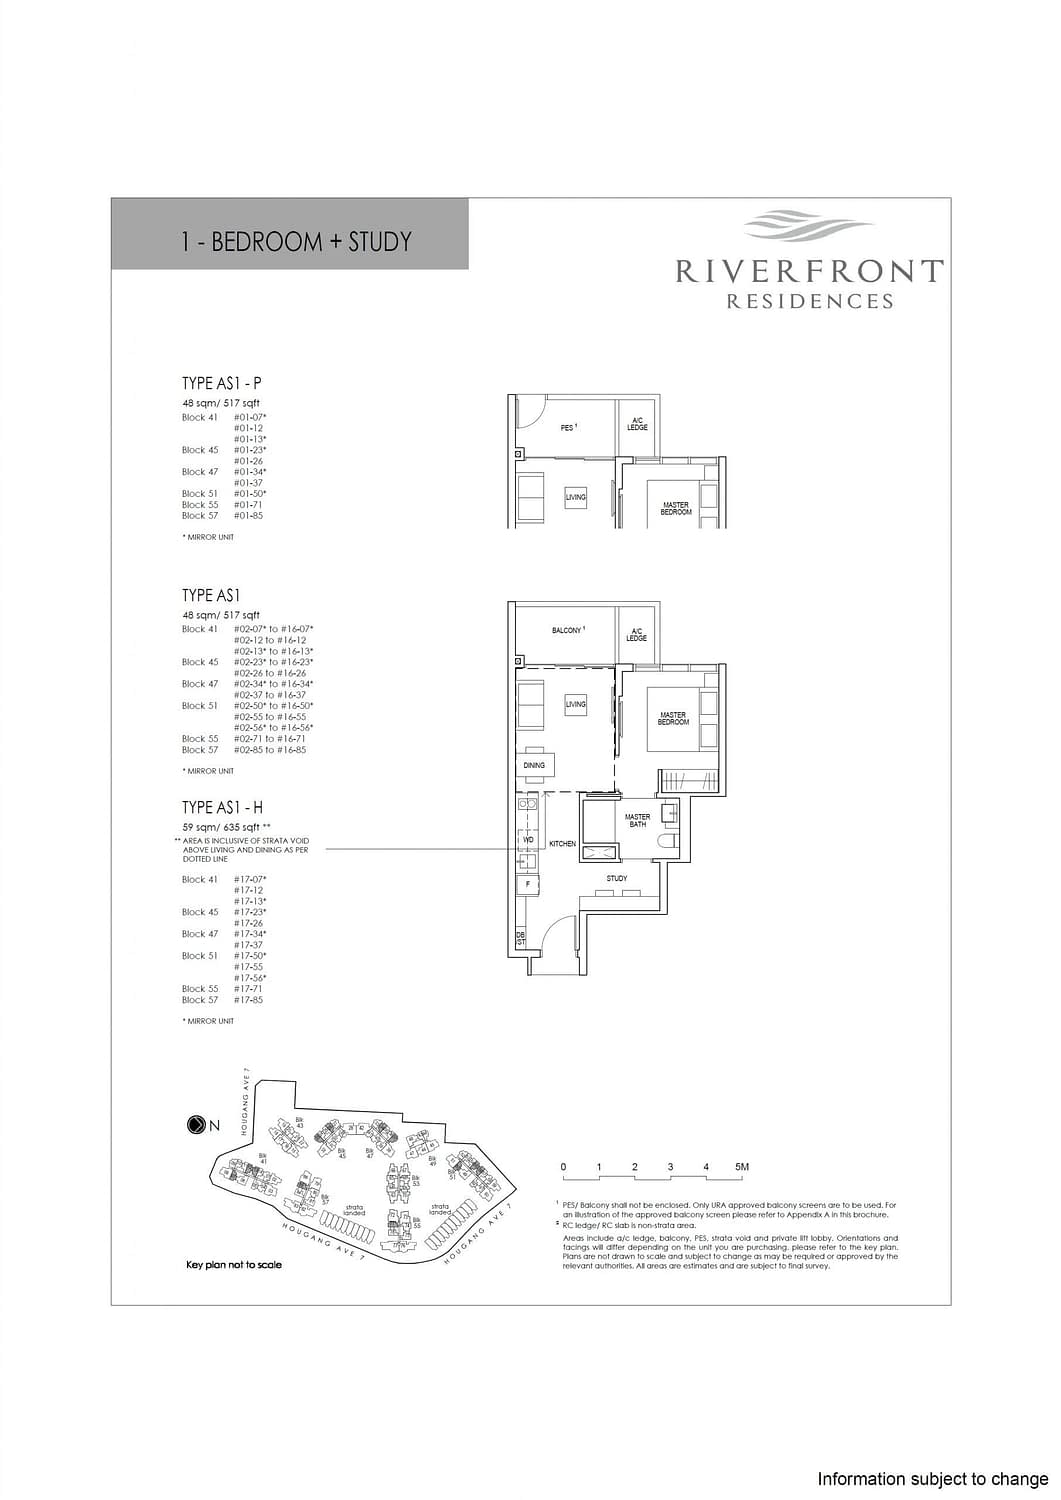 Riverfront Residences Riverfront Residences Floorplan AS1 P scaled